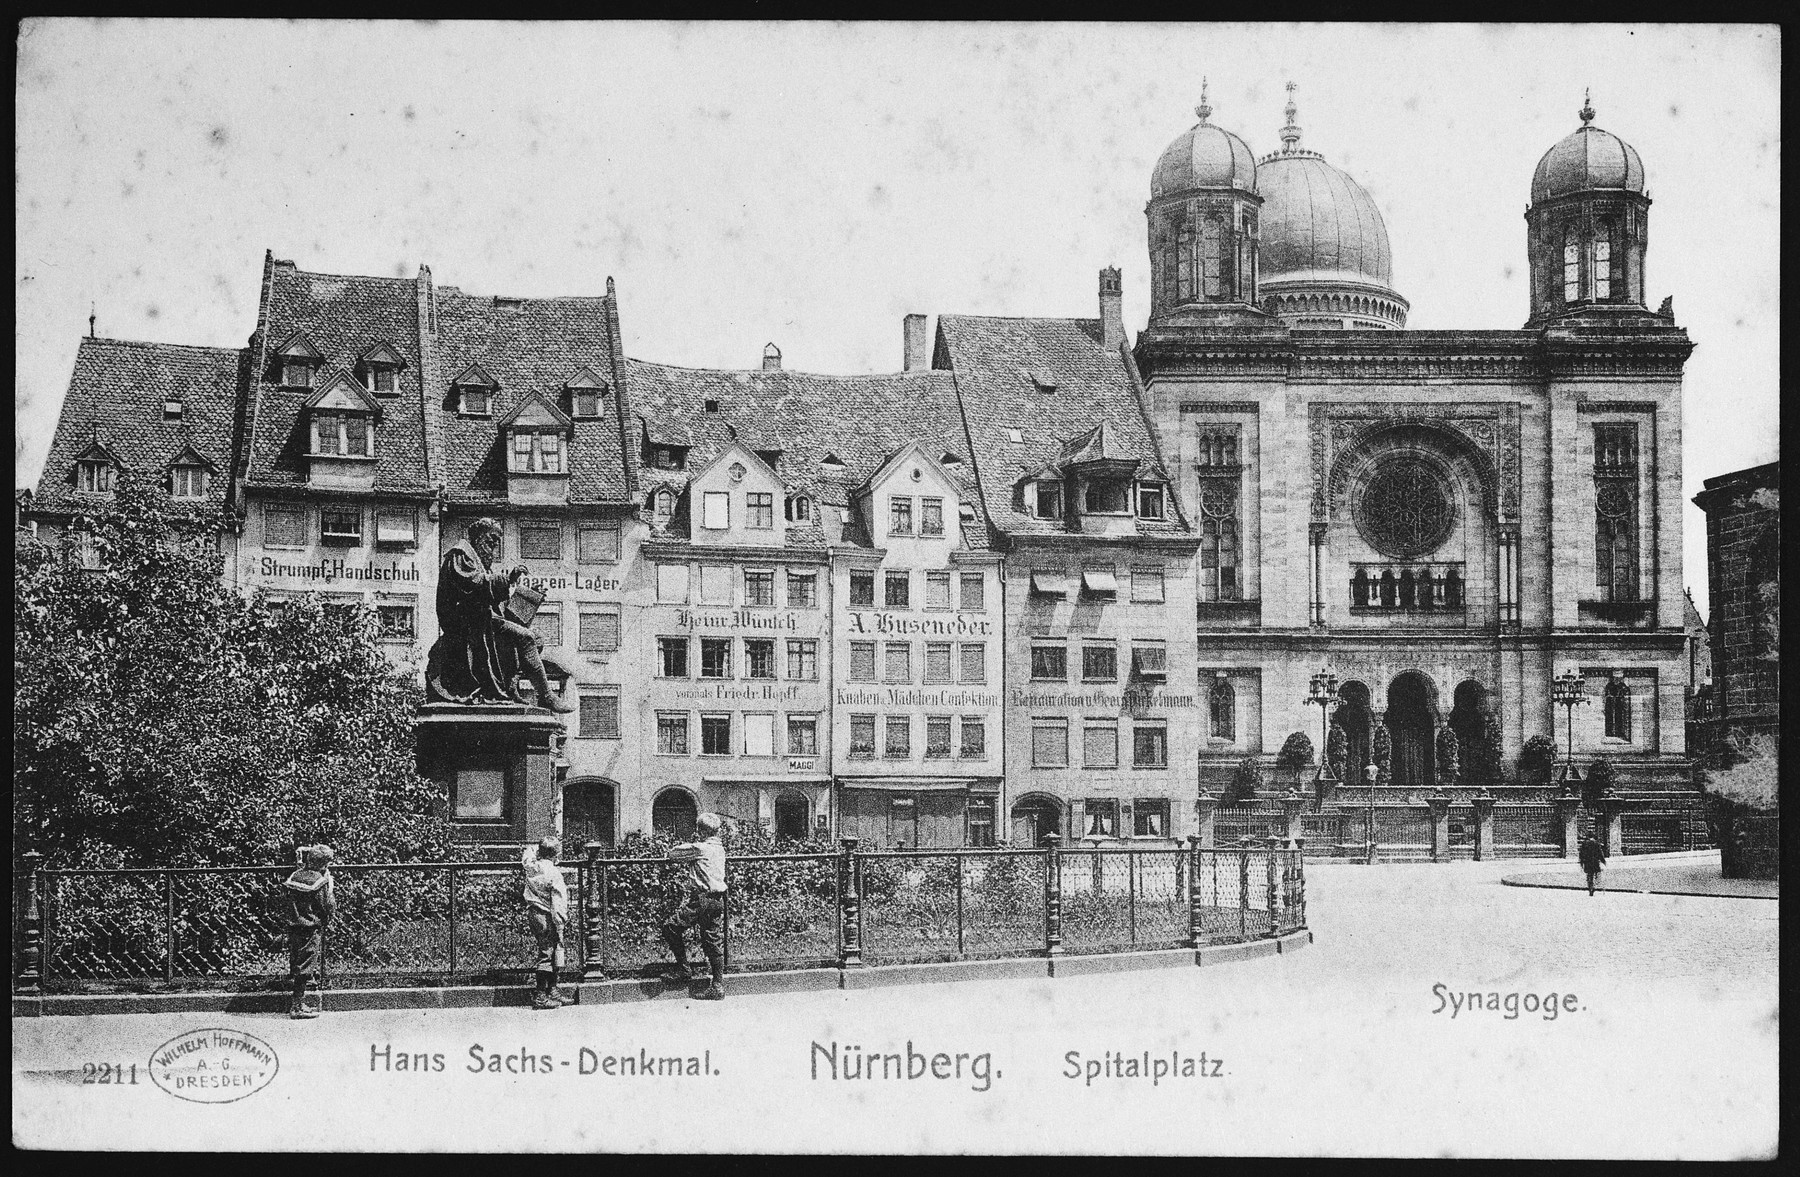 Picture postcard showing an exterior view of the synagogue in Nuremberg, Germany.